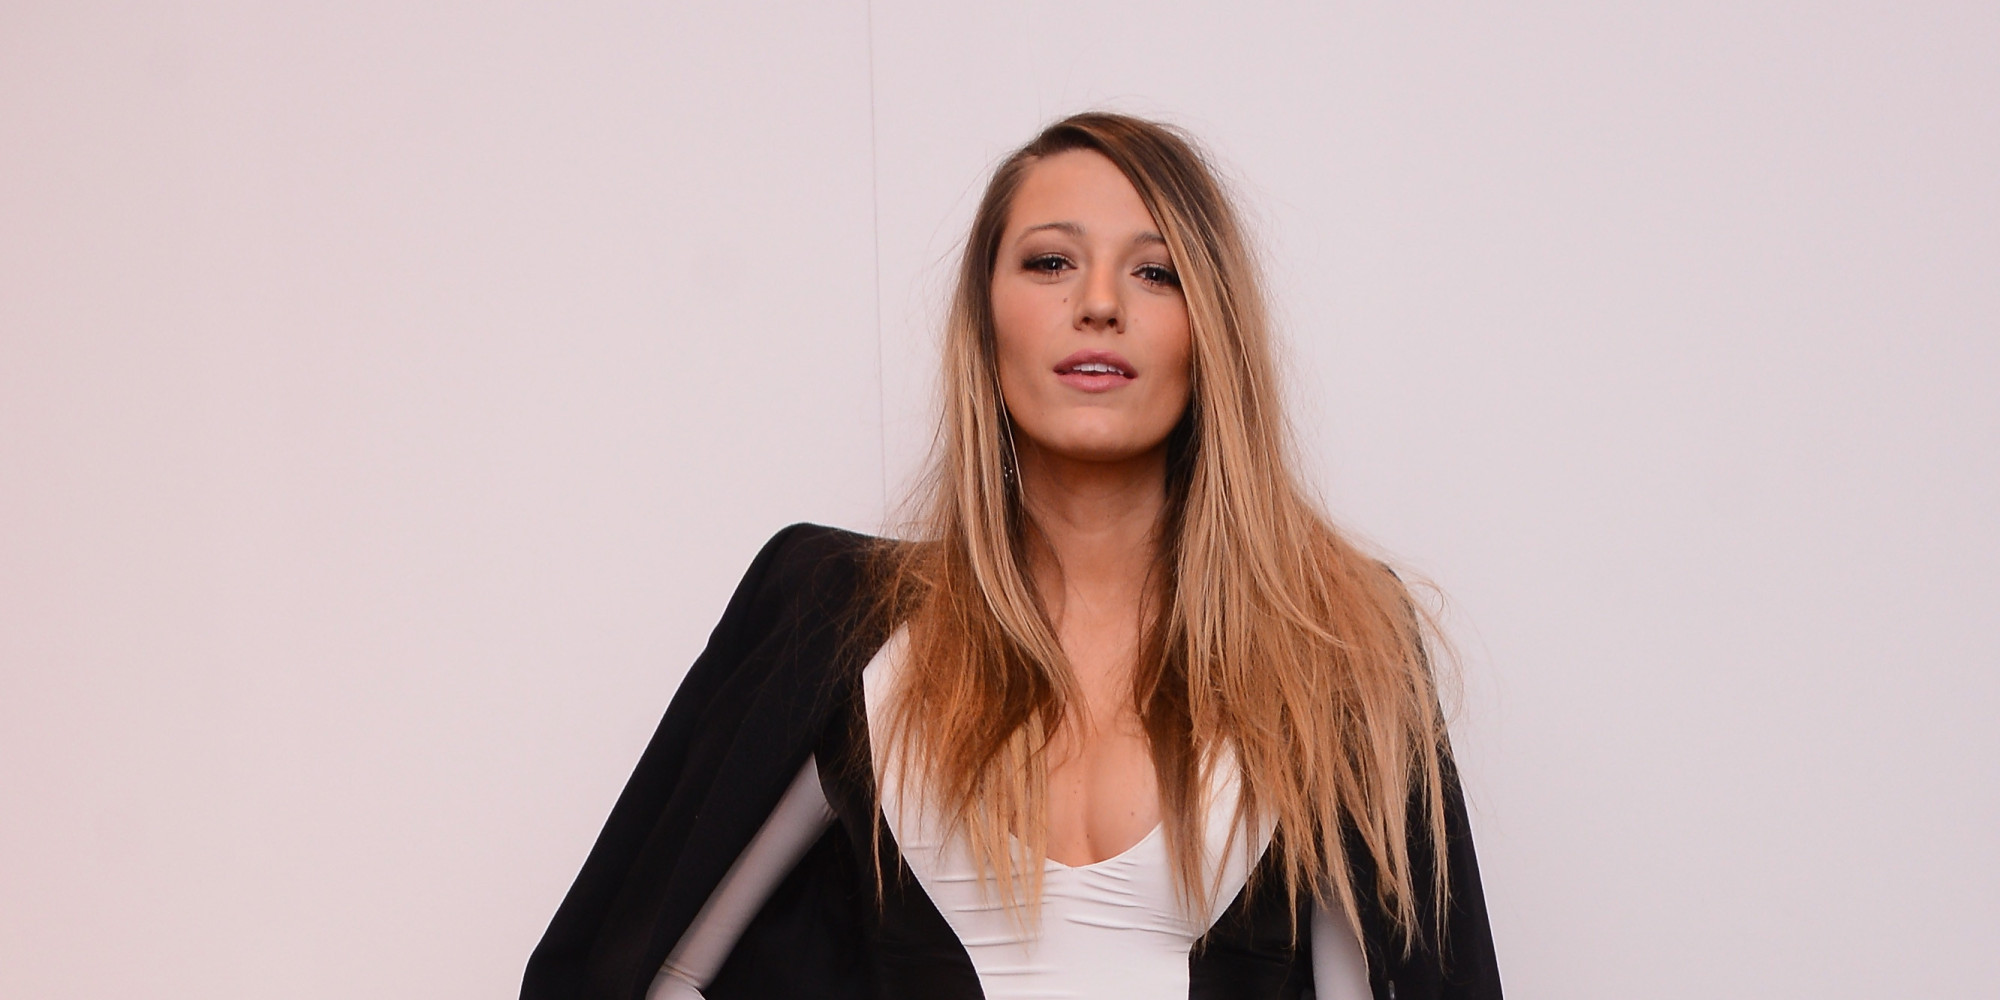 Blake Lively Cuts A Striking Figure In Bodycon Illusion ... Blake Lively Facebook